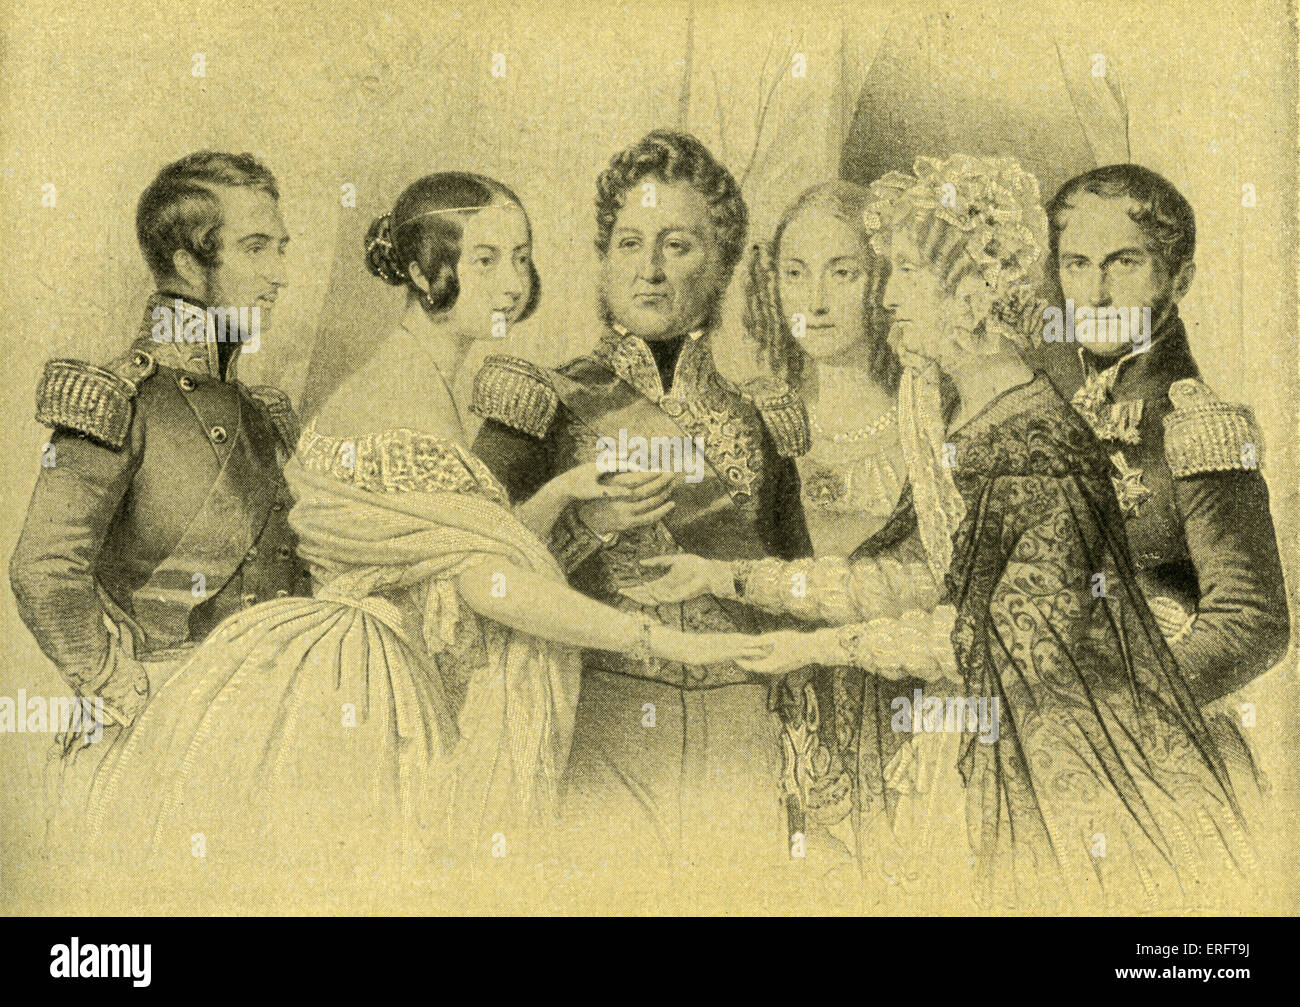 Queen Victoria & Prince Albert of England on a visit to Paris, 1843, meeting the French and Belgian royal families. - Stock Image